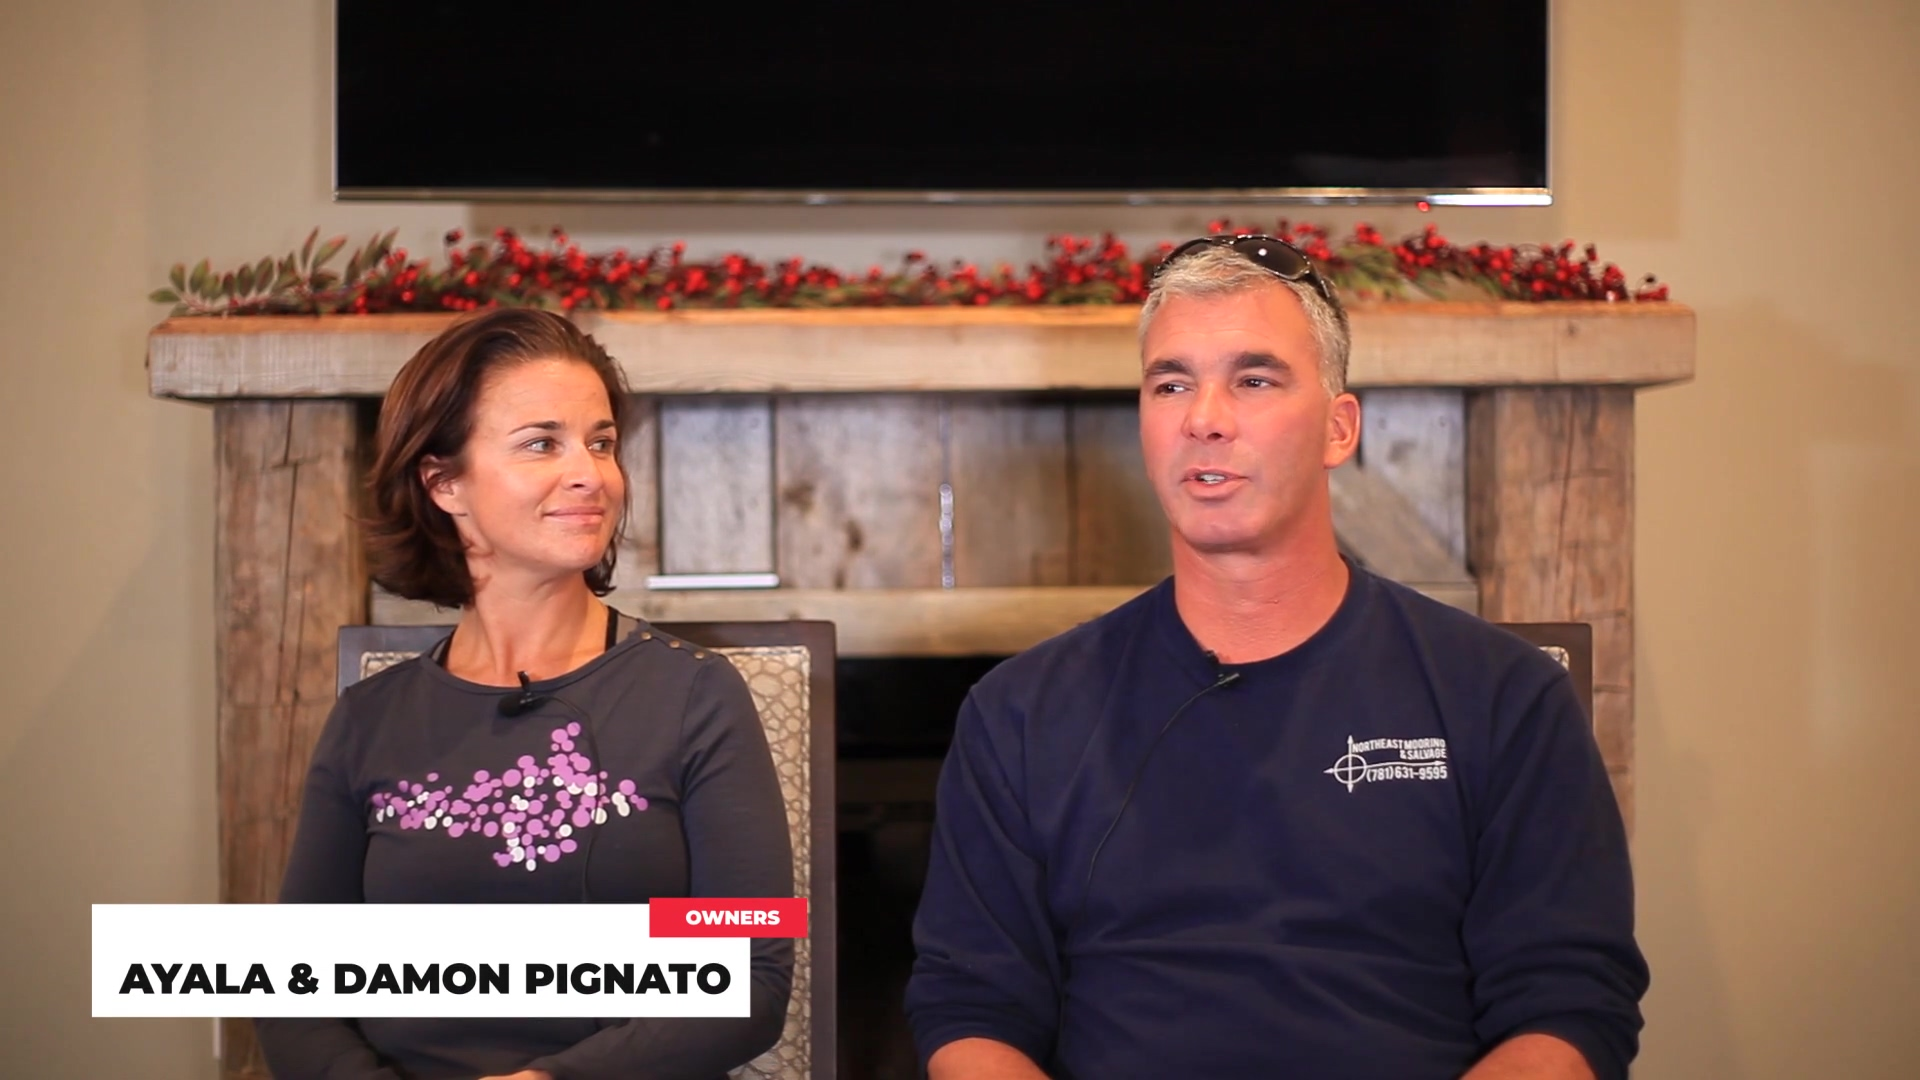 2019-09-21 Pignato riverwalk interview v2